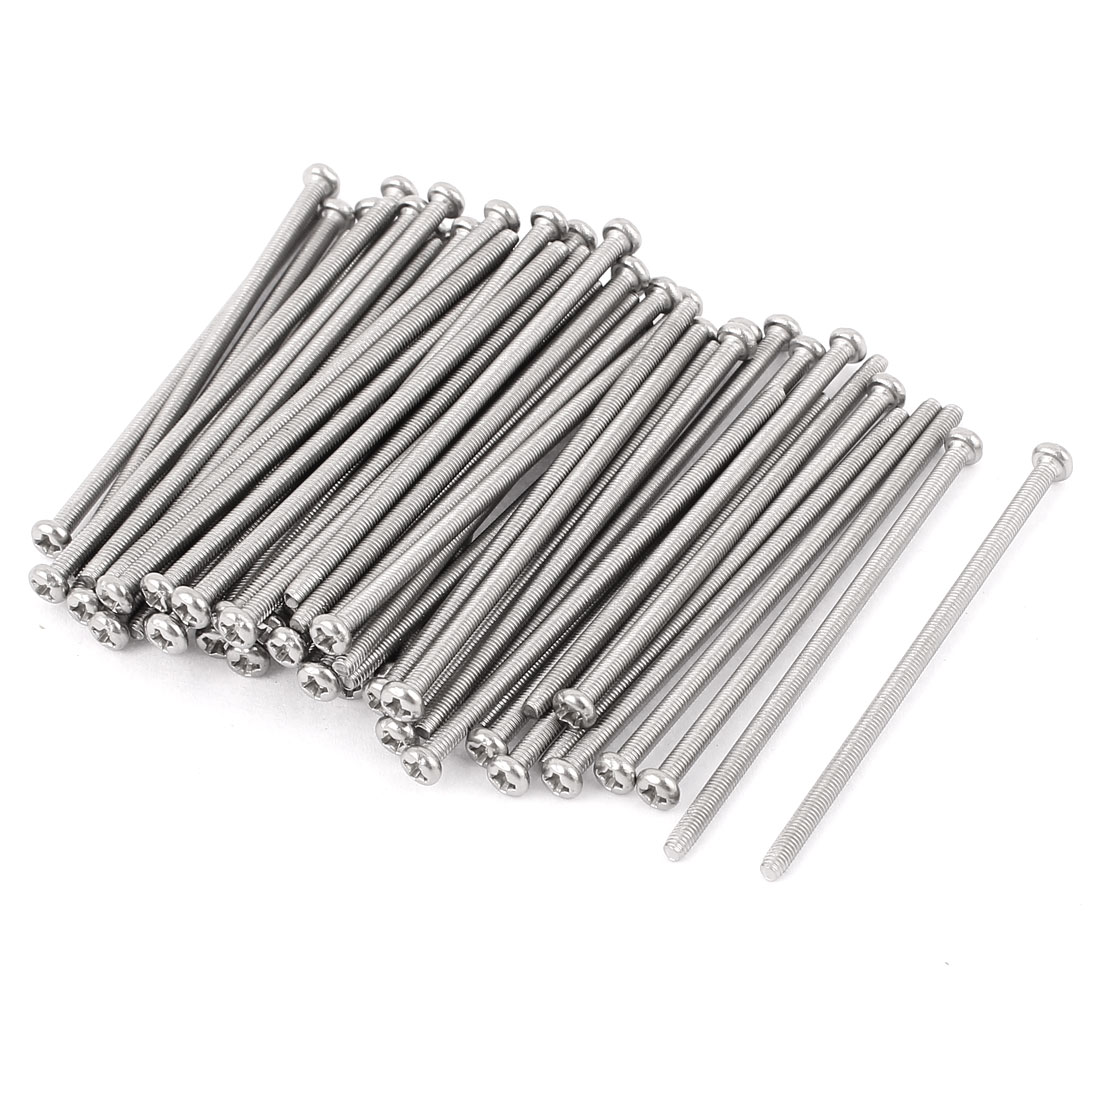 Uxcell M3 x 70mm 304 Stainless Steel Crosshead Pan Head Screws Bolt (60-pack)